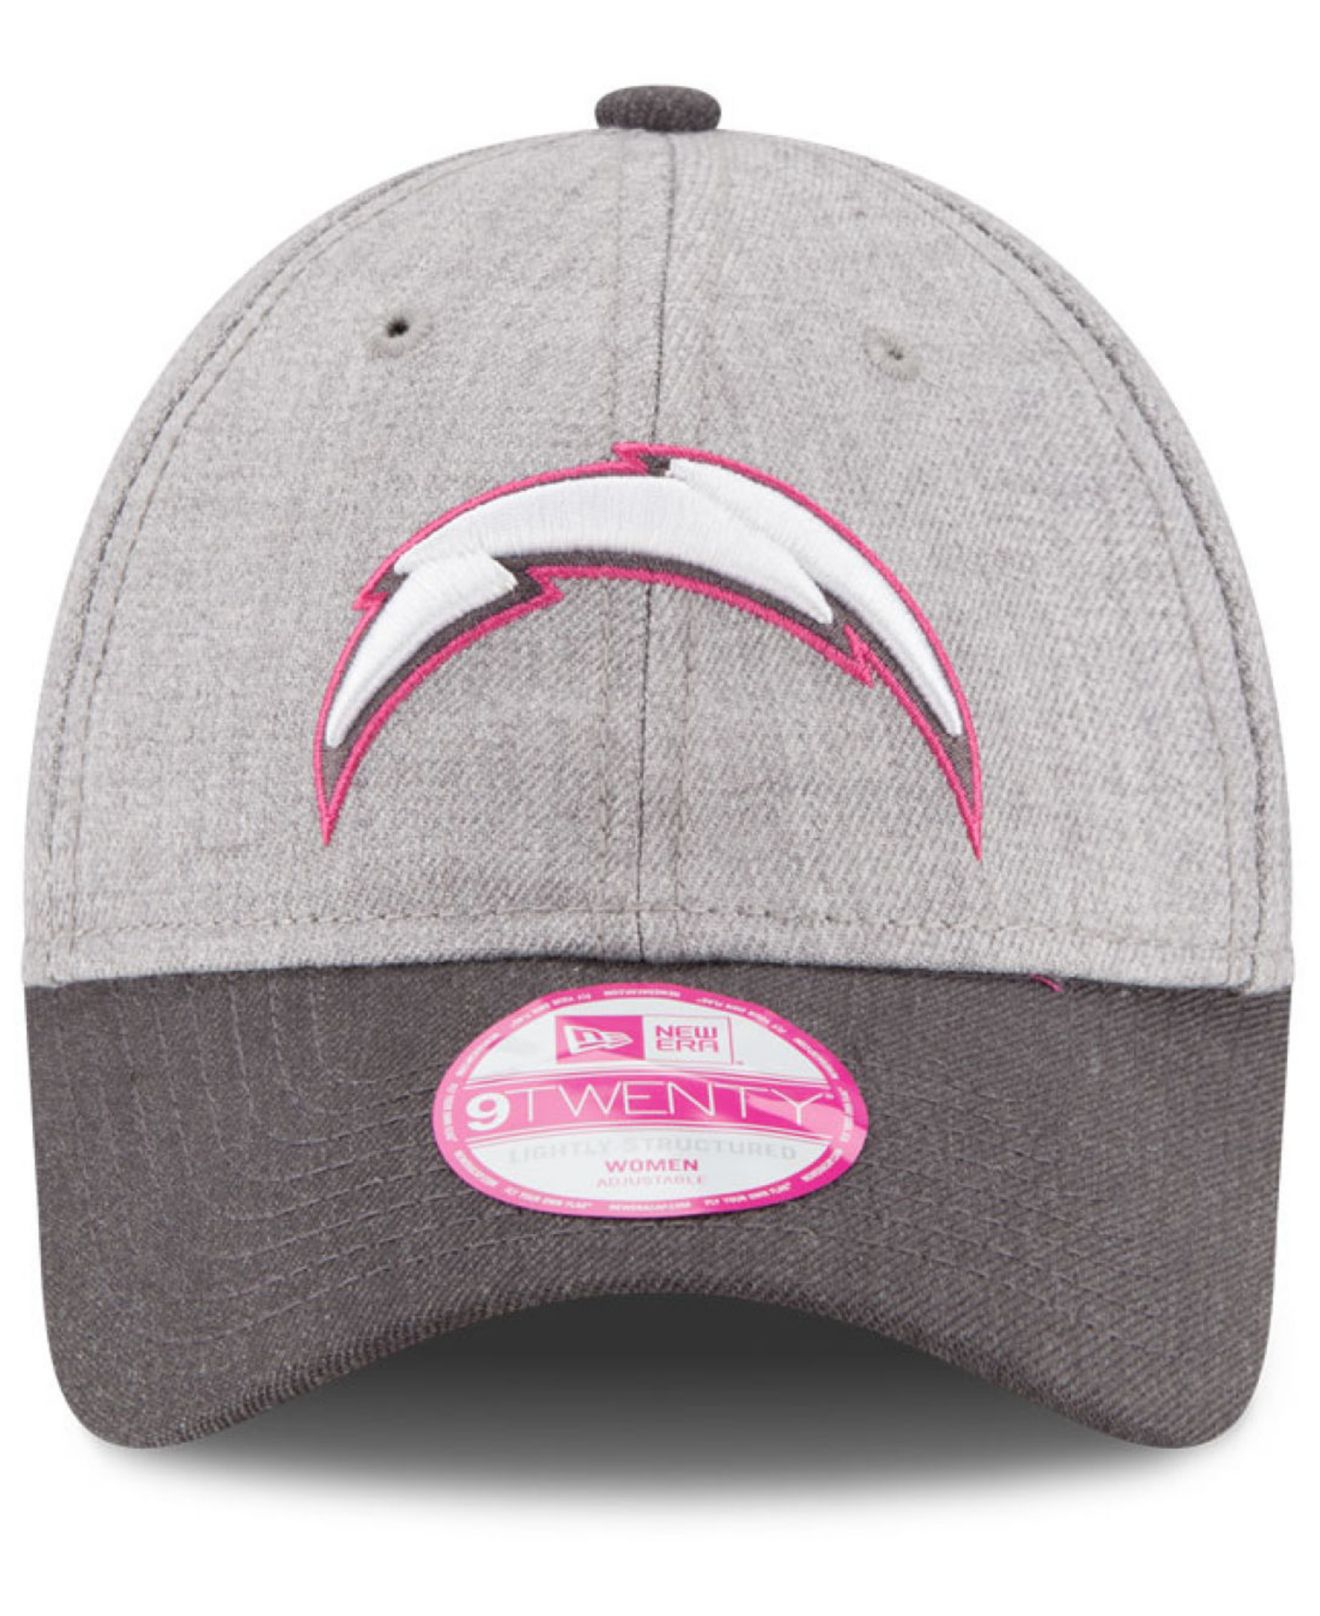 San Diego Chargers Cap: Ktz Women's San Diego Chargers Breast Cancer